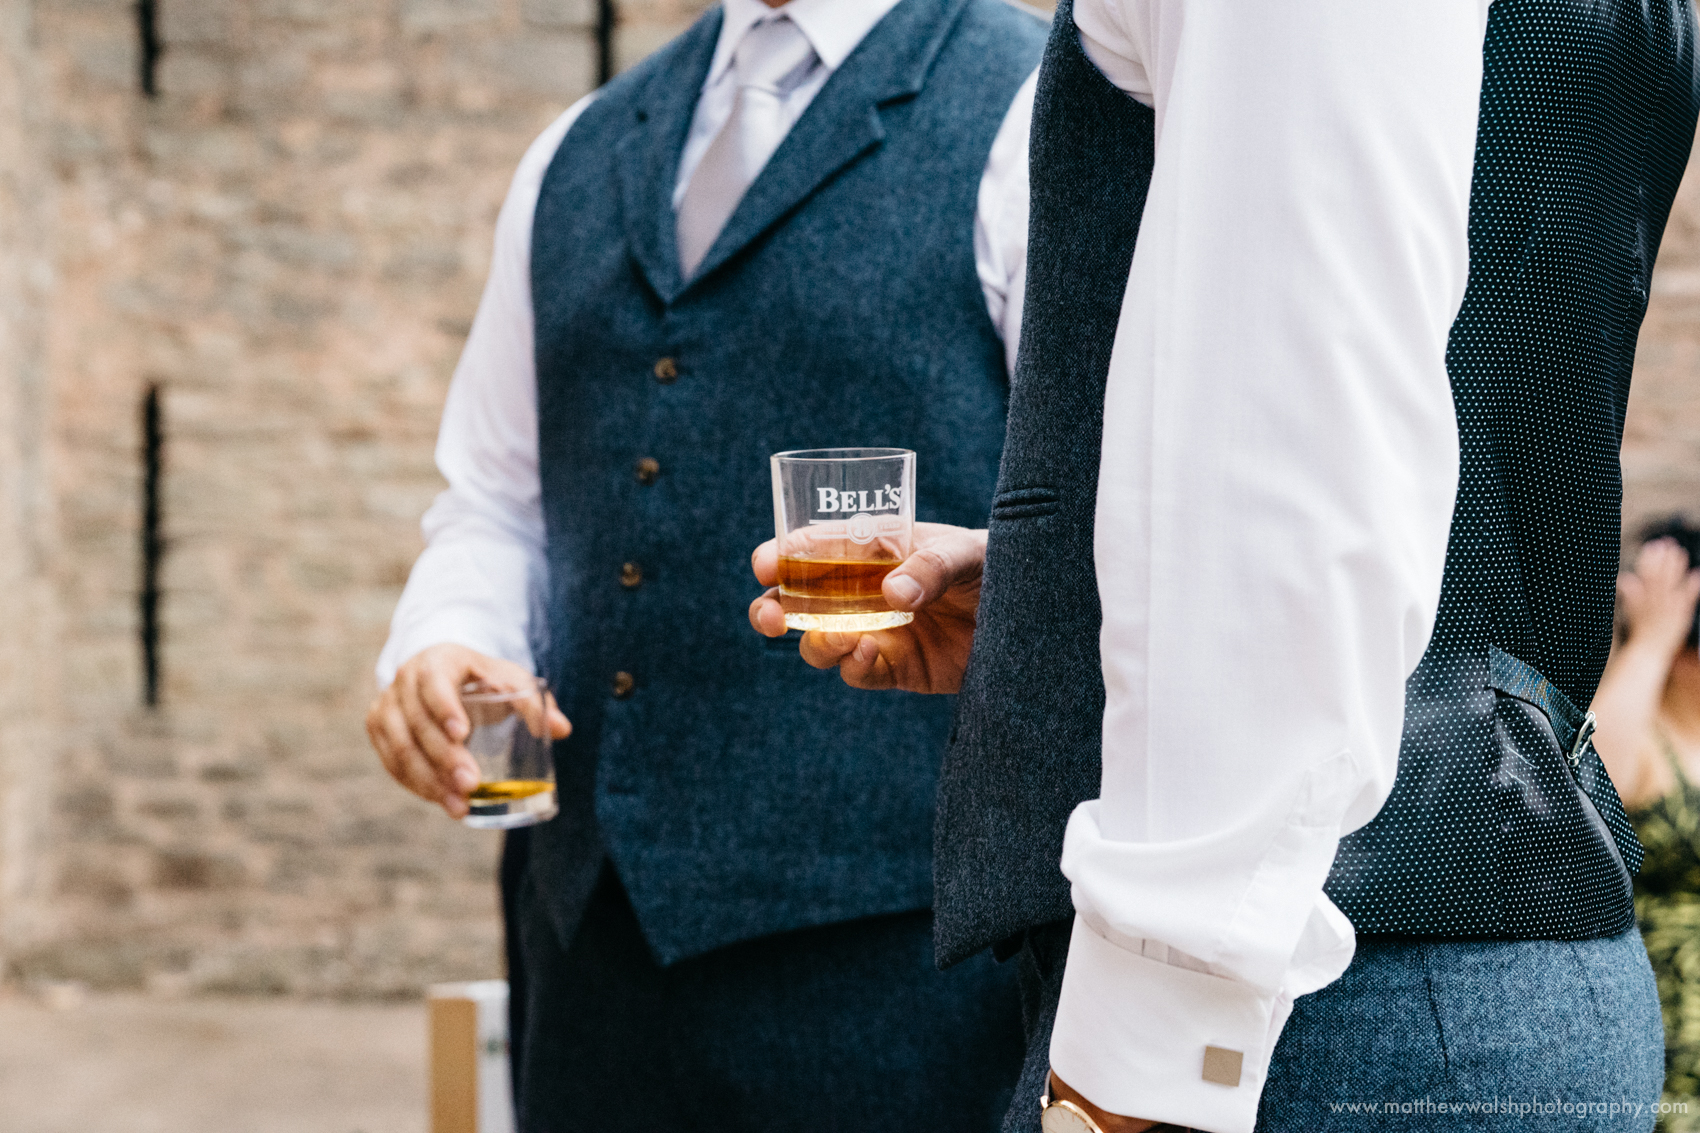 The groom calming his nerves a little more with a glass of whisky